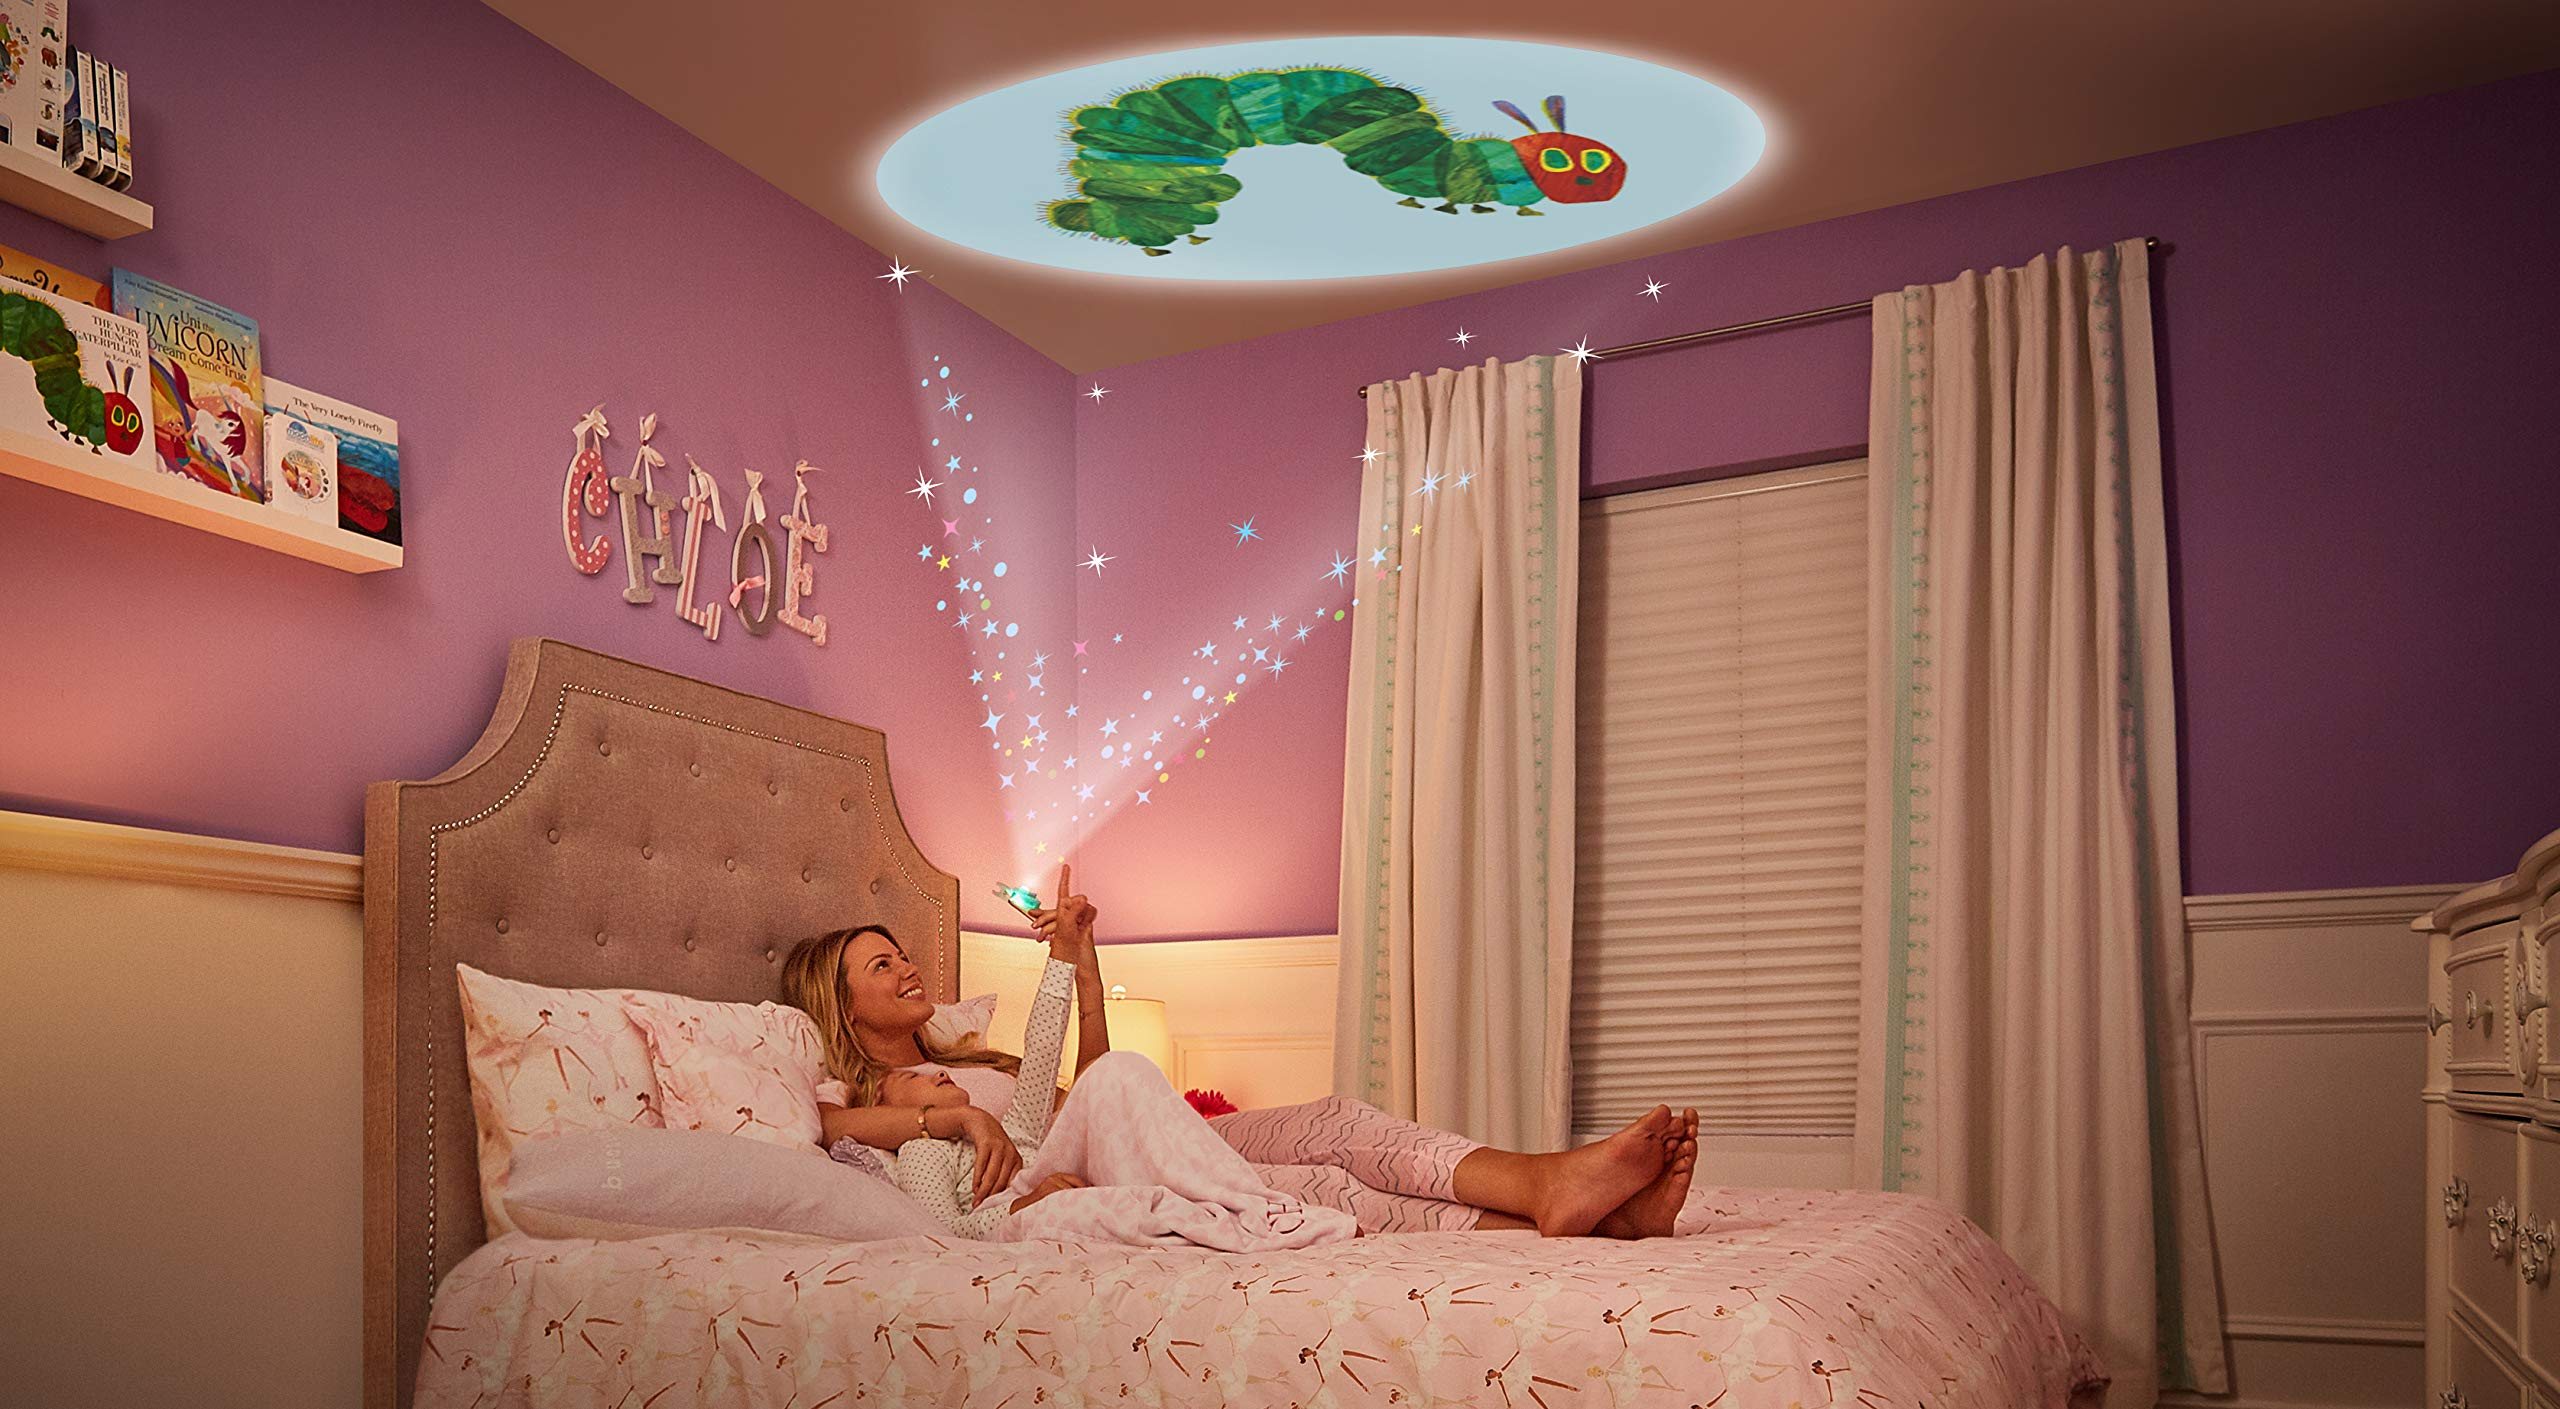 Moonlite - Eric Carle Junior Starter Pack, Storybook Projector for Smartphones with 2 Story Reels, For Ages 1 and Up by Moonlite (Image #6)